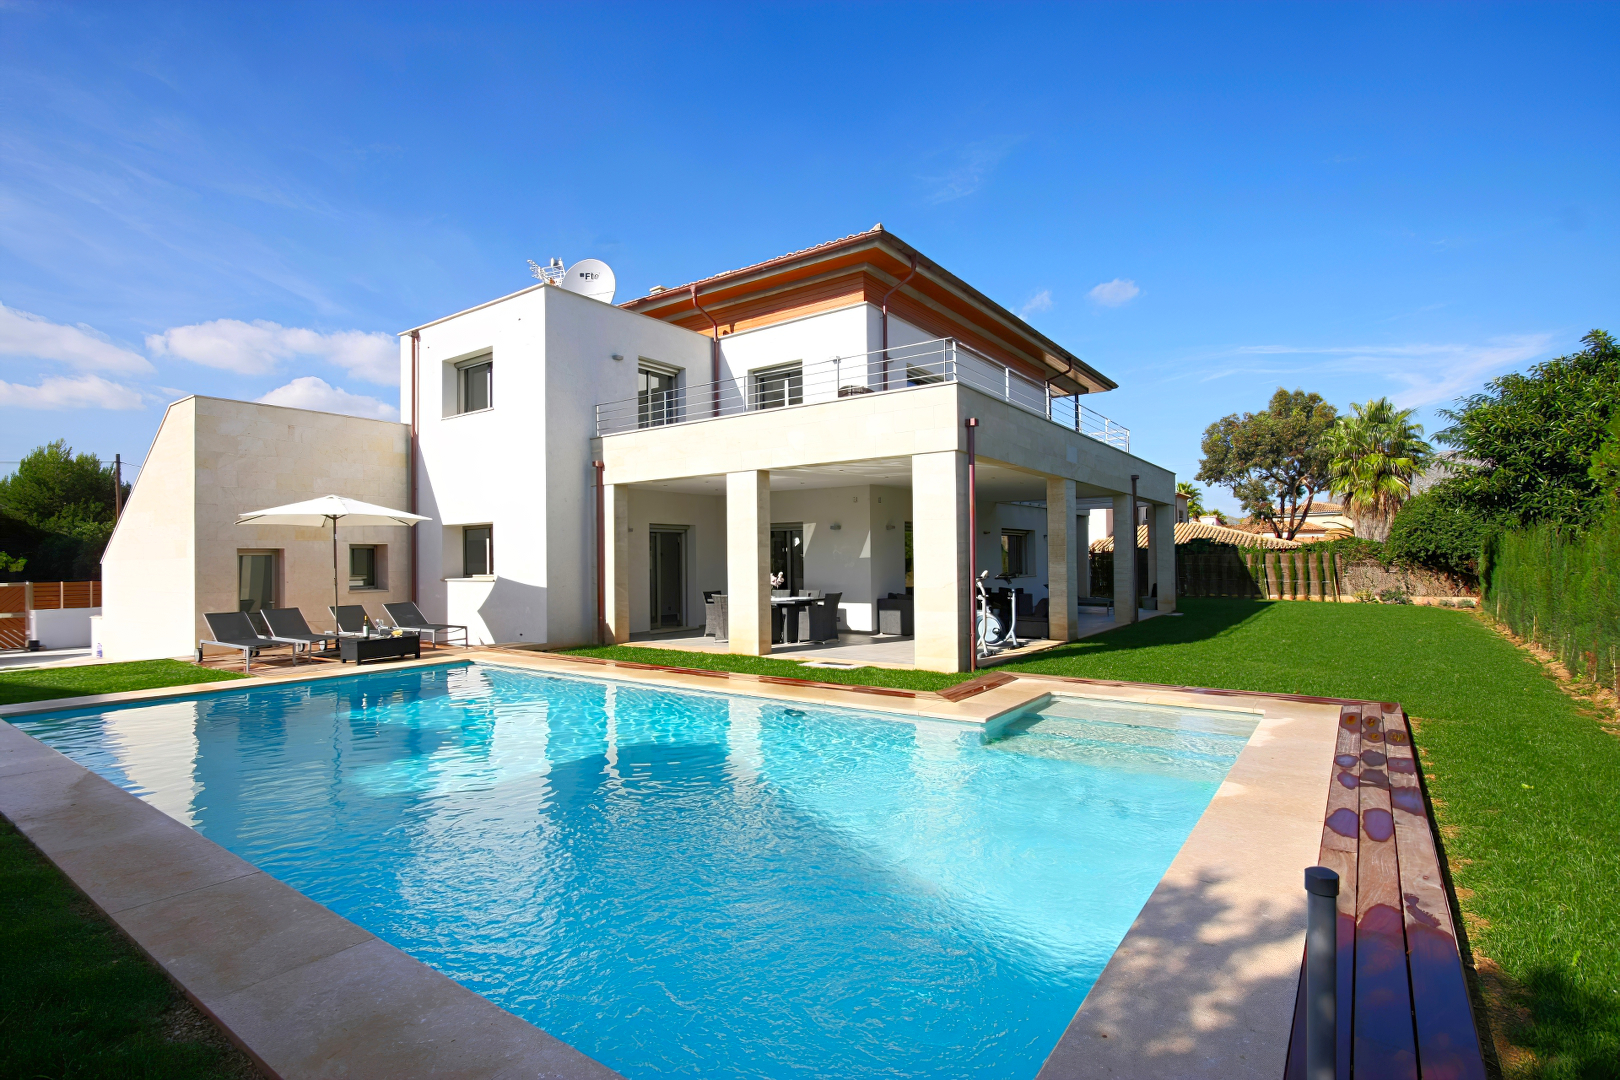 Casa Linda is a luxury villa for rent in Puerto Pollensa